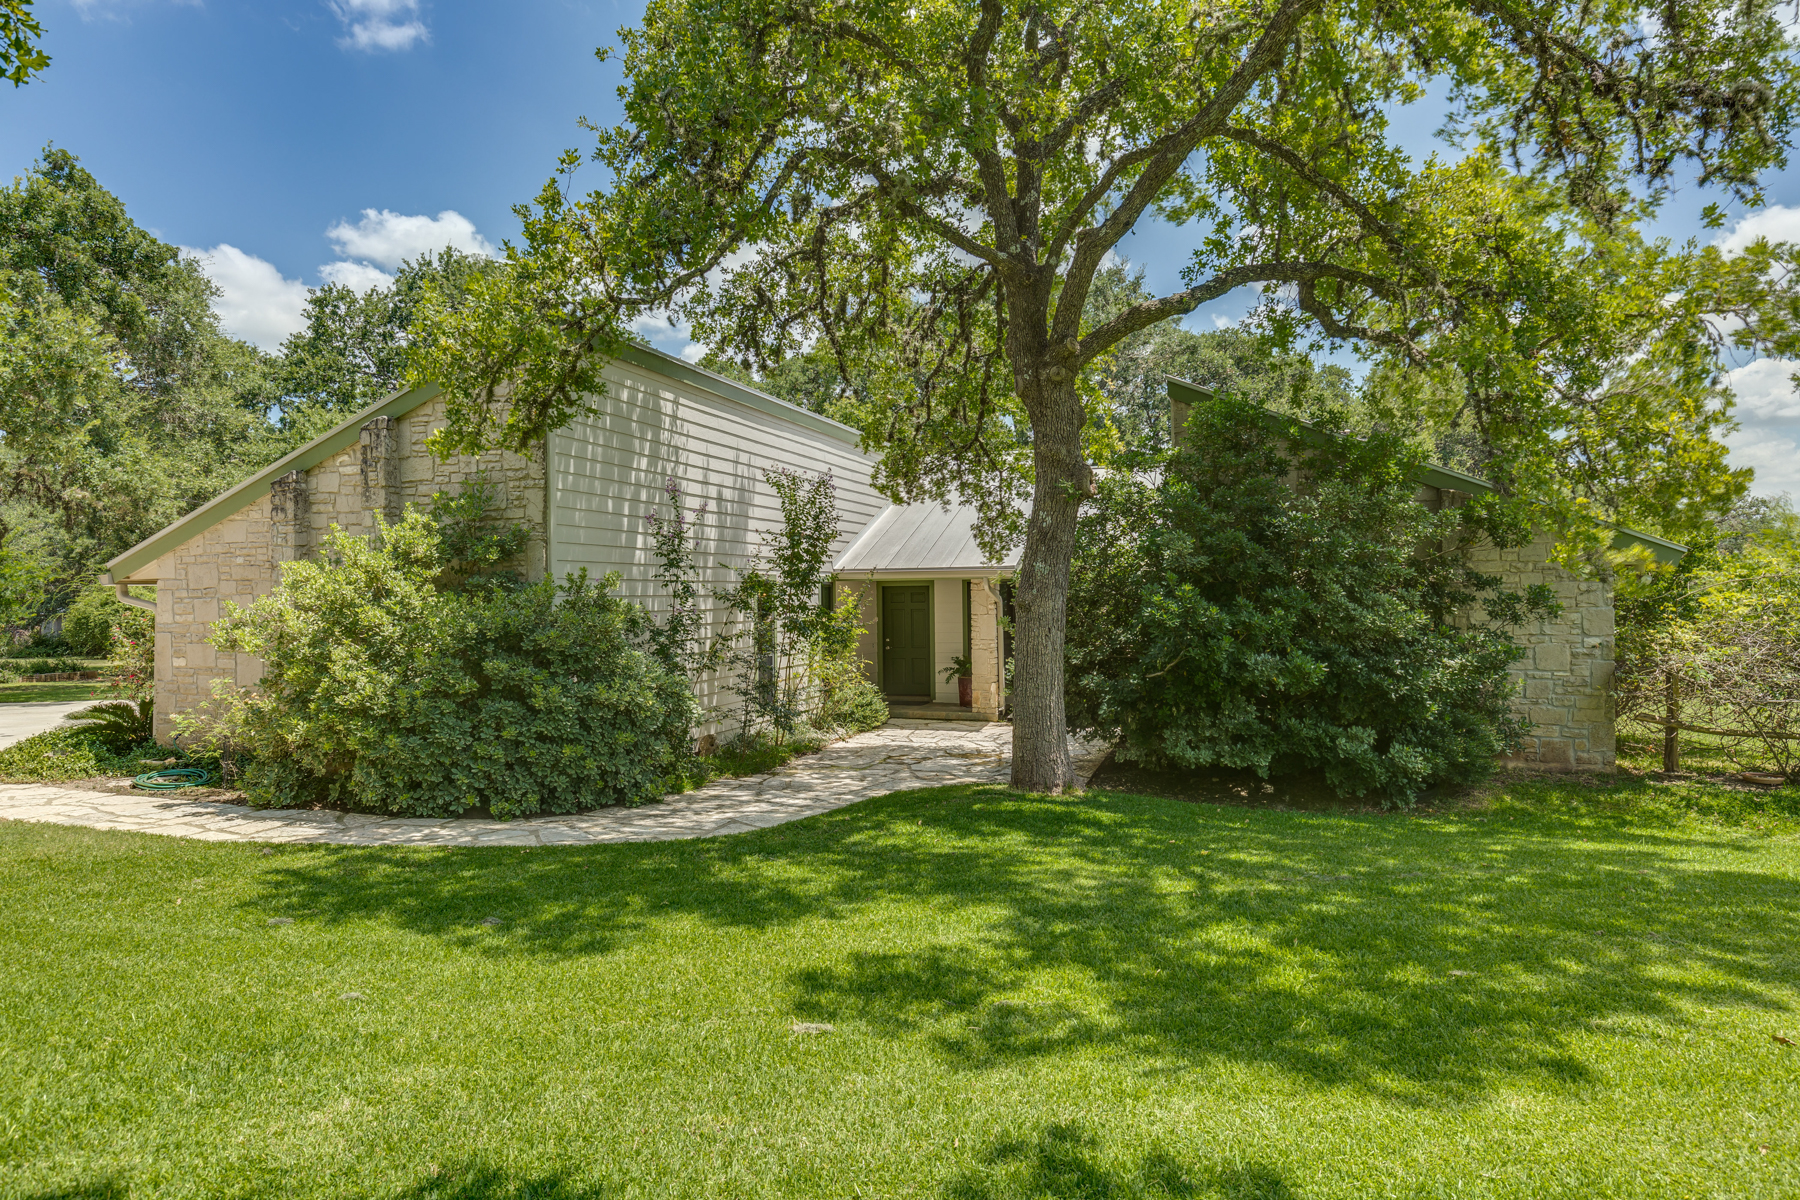 Additional photo for property listing at Spectacular Property in Boerne 141 Cascade Caverns Rd Boerne, Texas 78006 United States